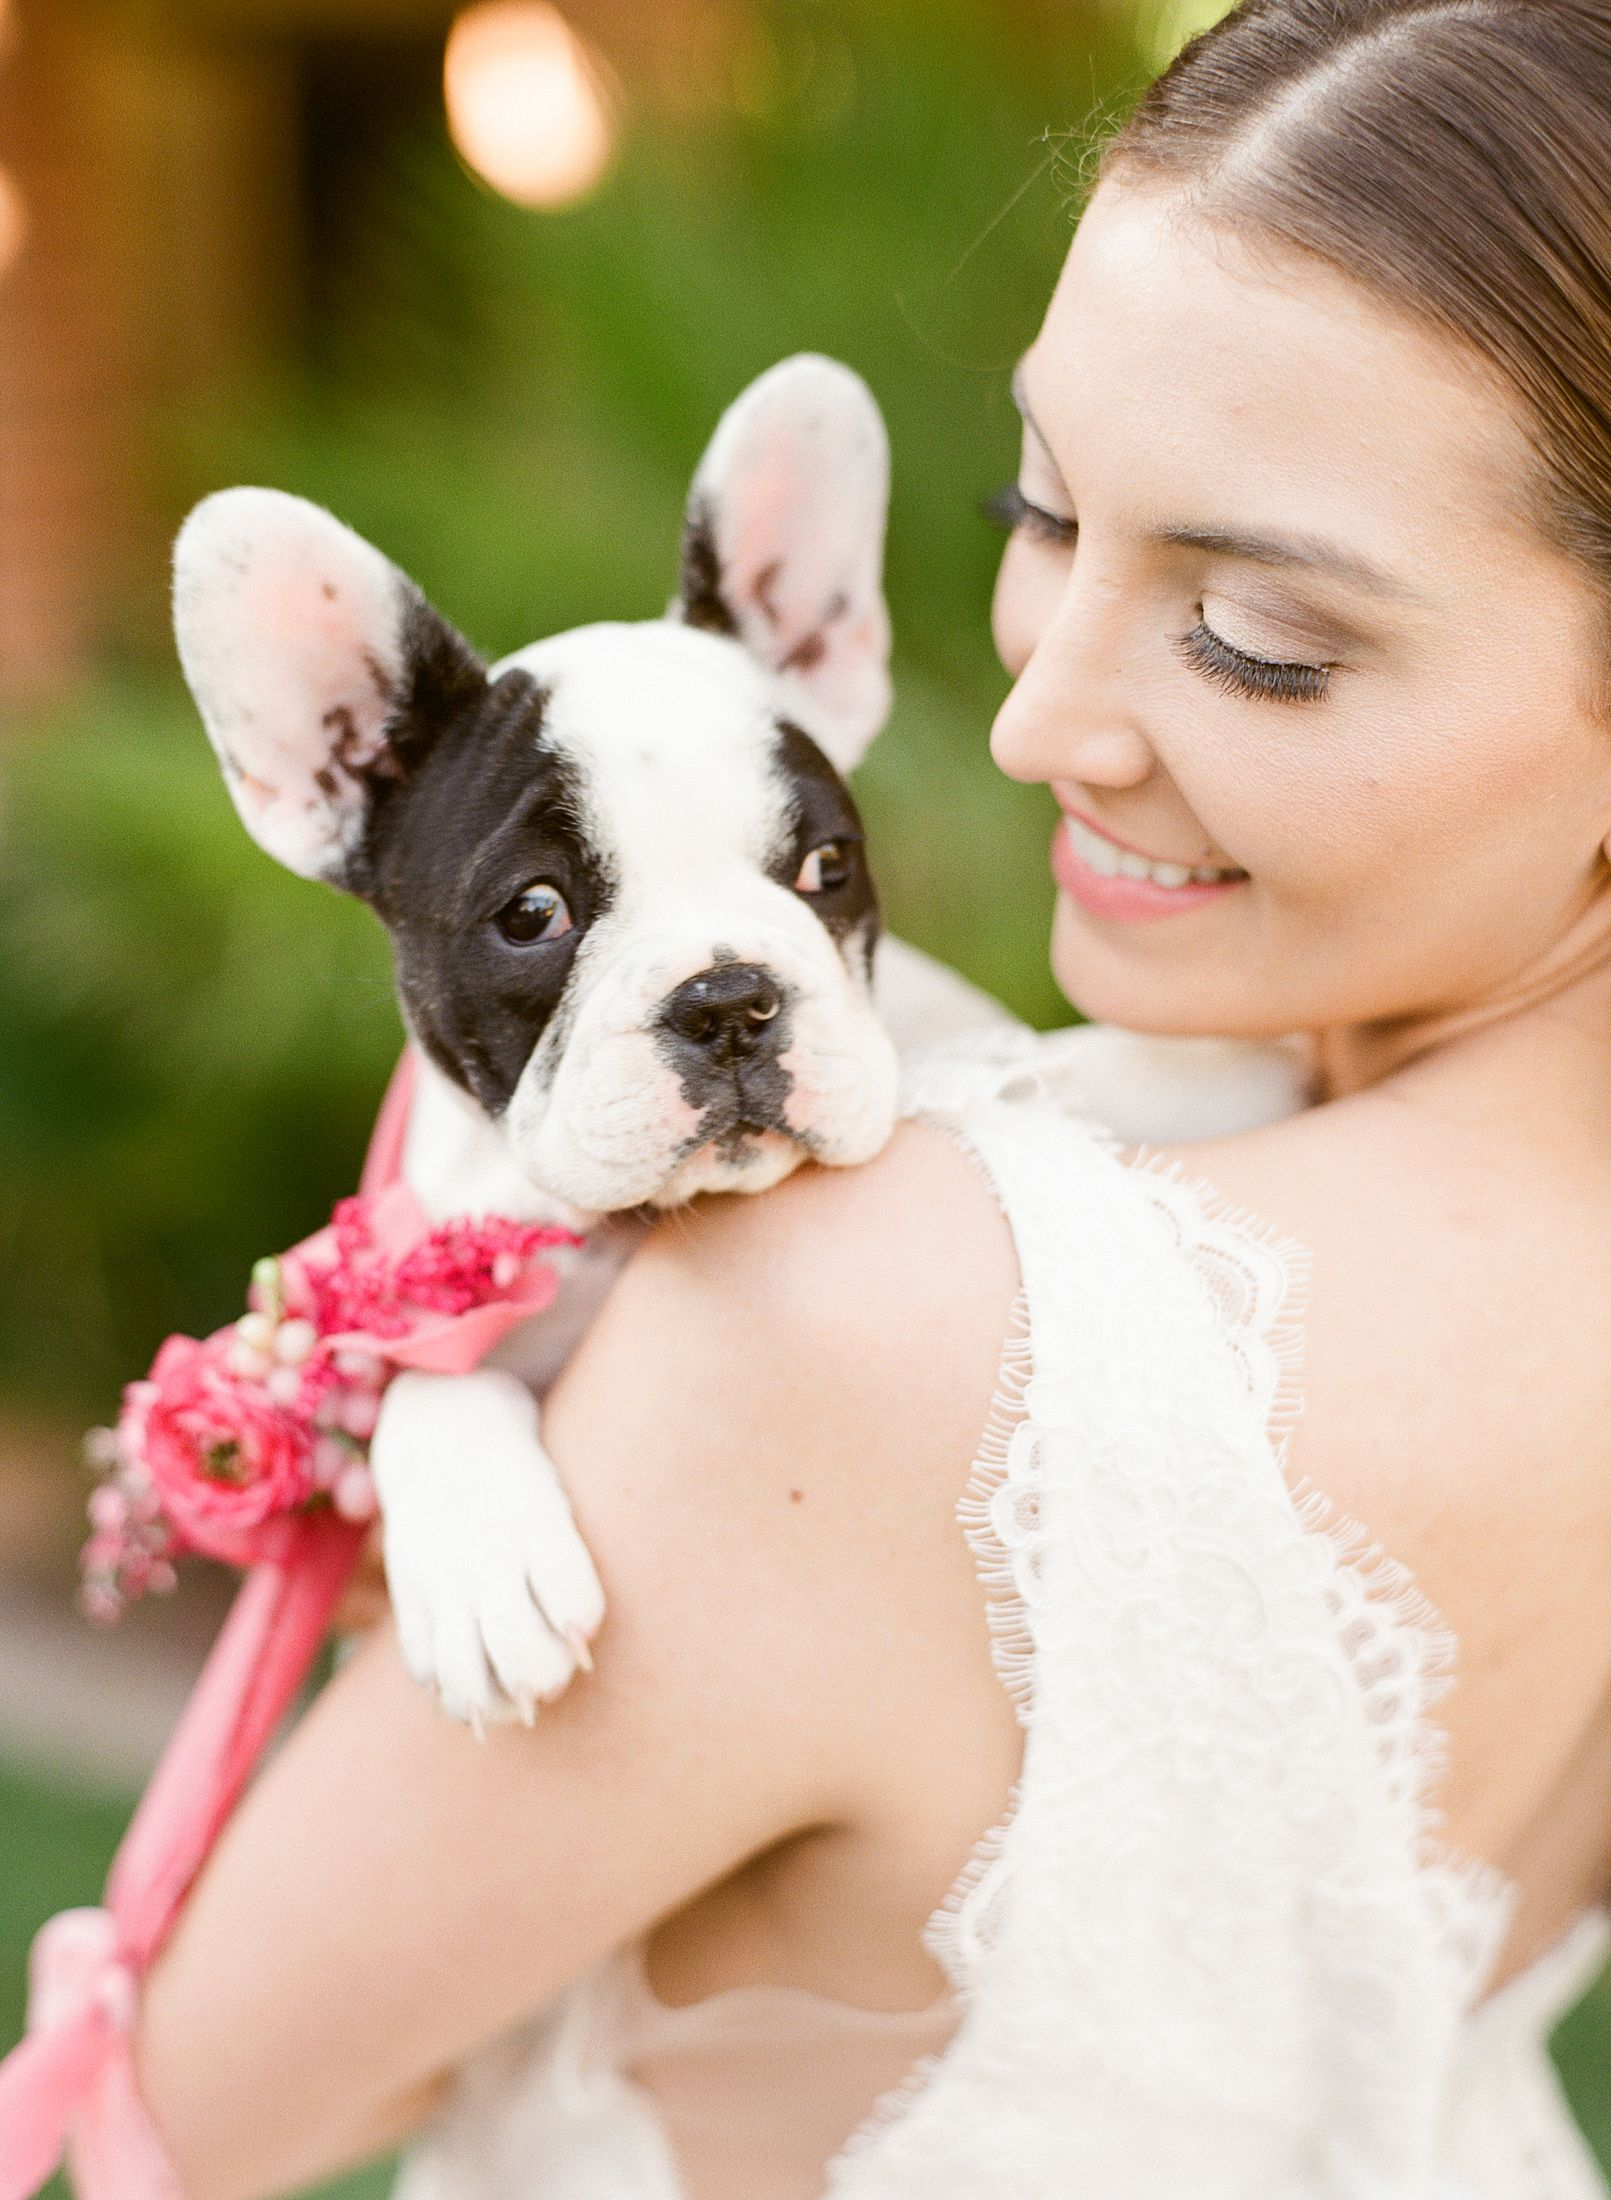 Pink Ombre Wedding Inspiration on Style Me Pretty - Royal Palms Wedding - Scottsdale Wedding - Ashley Baumgartner - Bloom and Blueprint - Wedding Puppies - Bulldog Puppies_0021.jpg